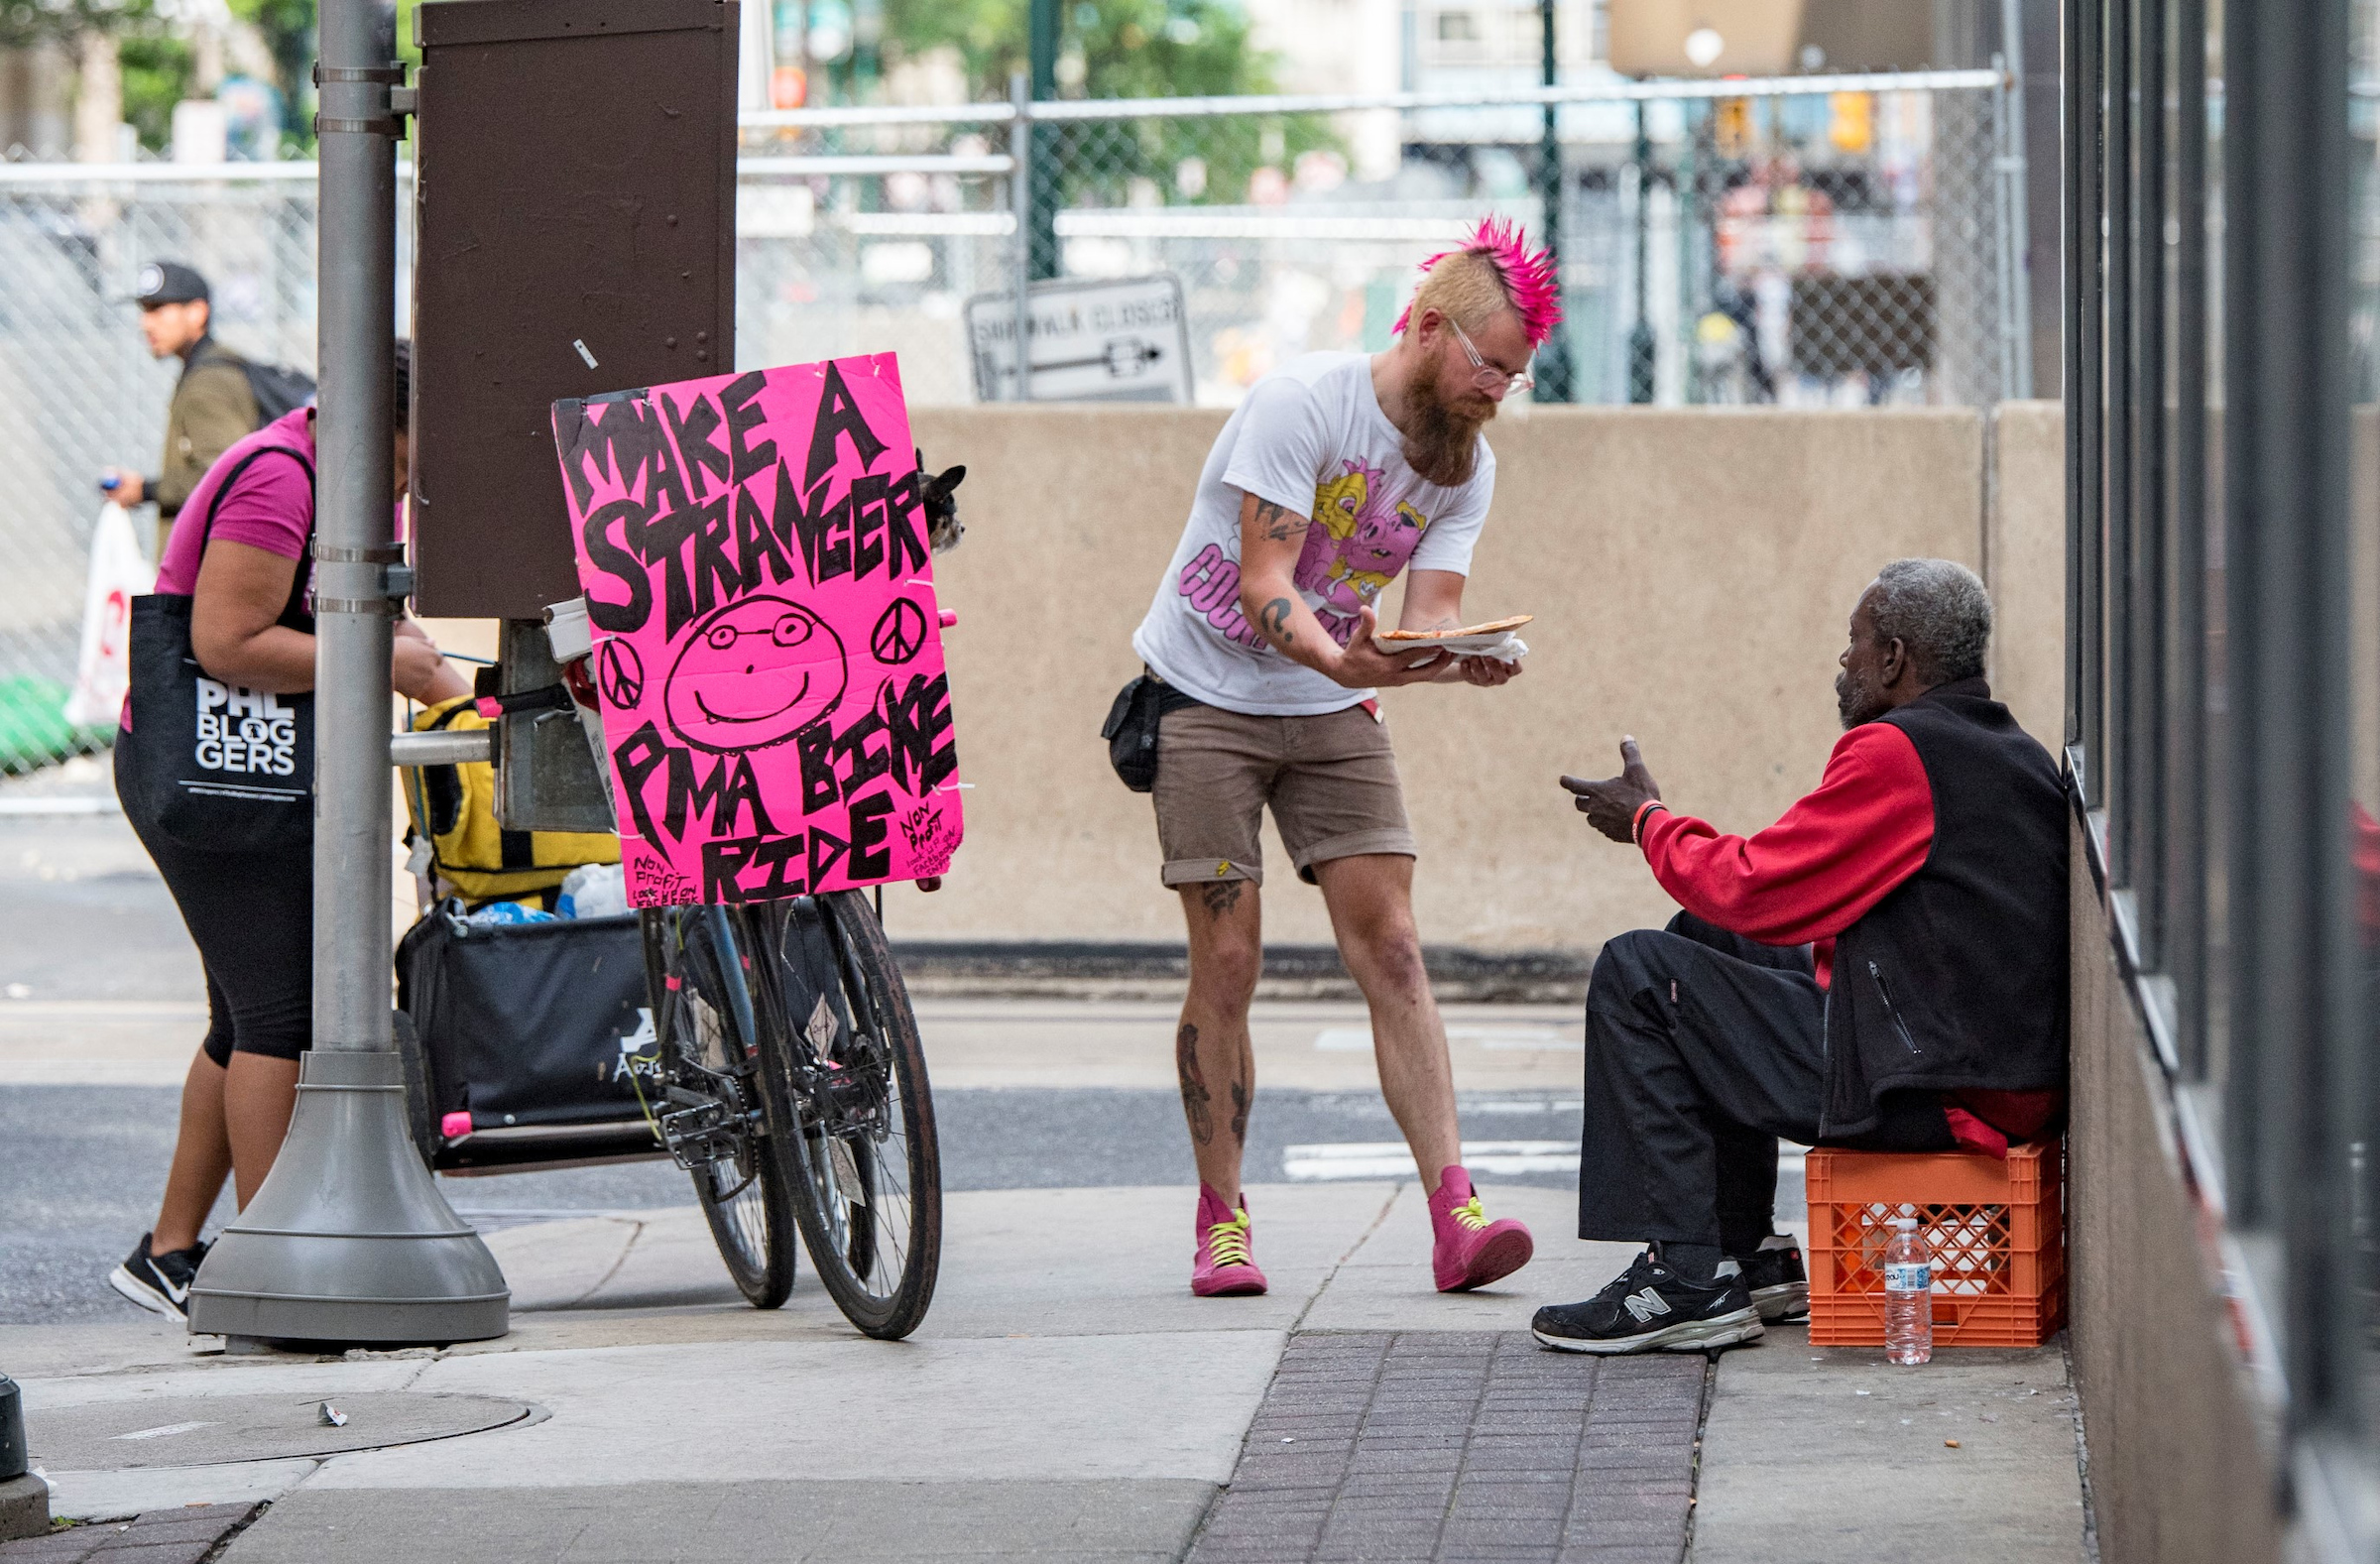 """Joe shares pizza with a man in Philadelphia's center city. He is famous for his pink mohawk and neon signs calling on people to """"Make a Stranger Smile""""."""